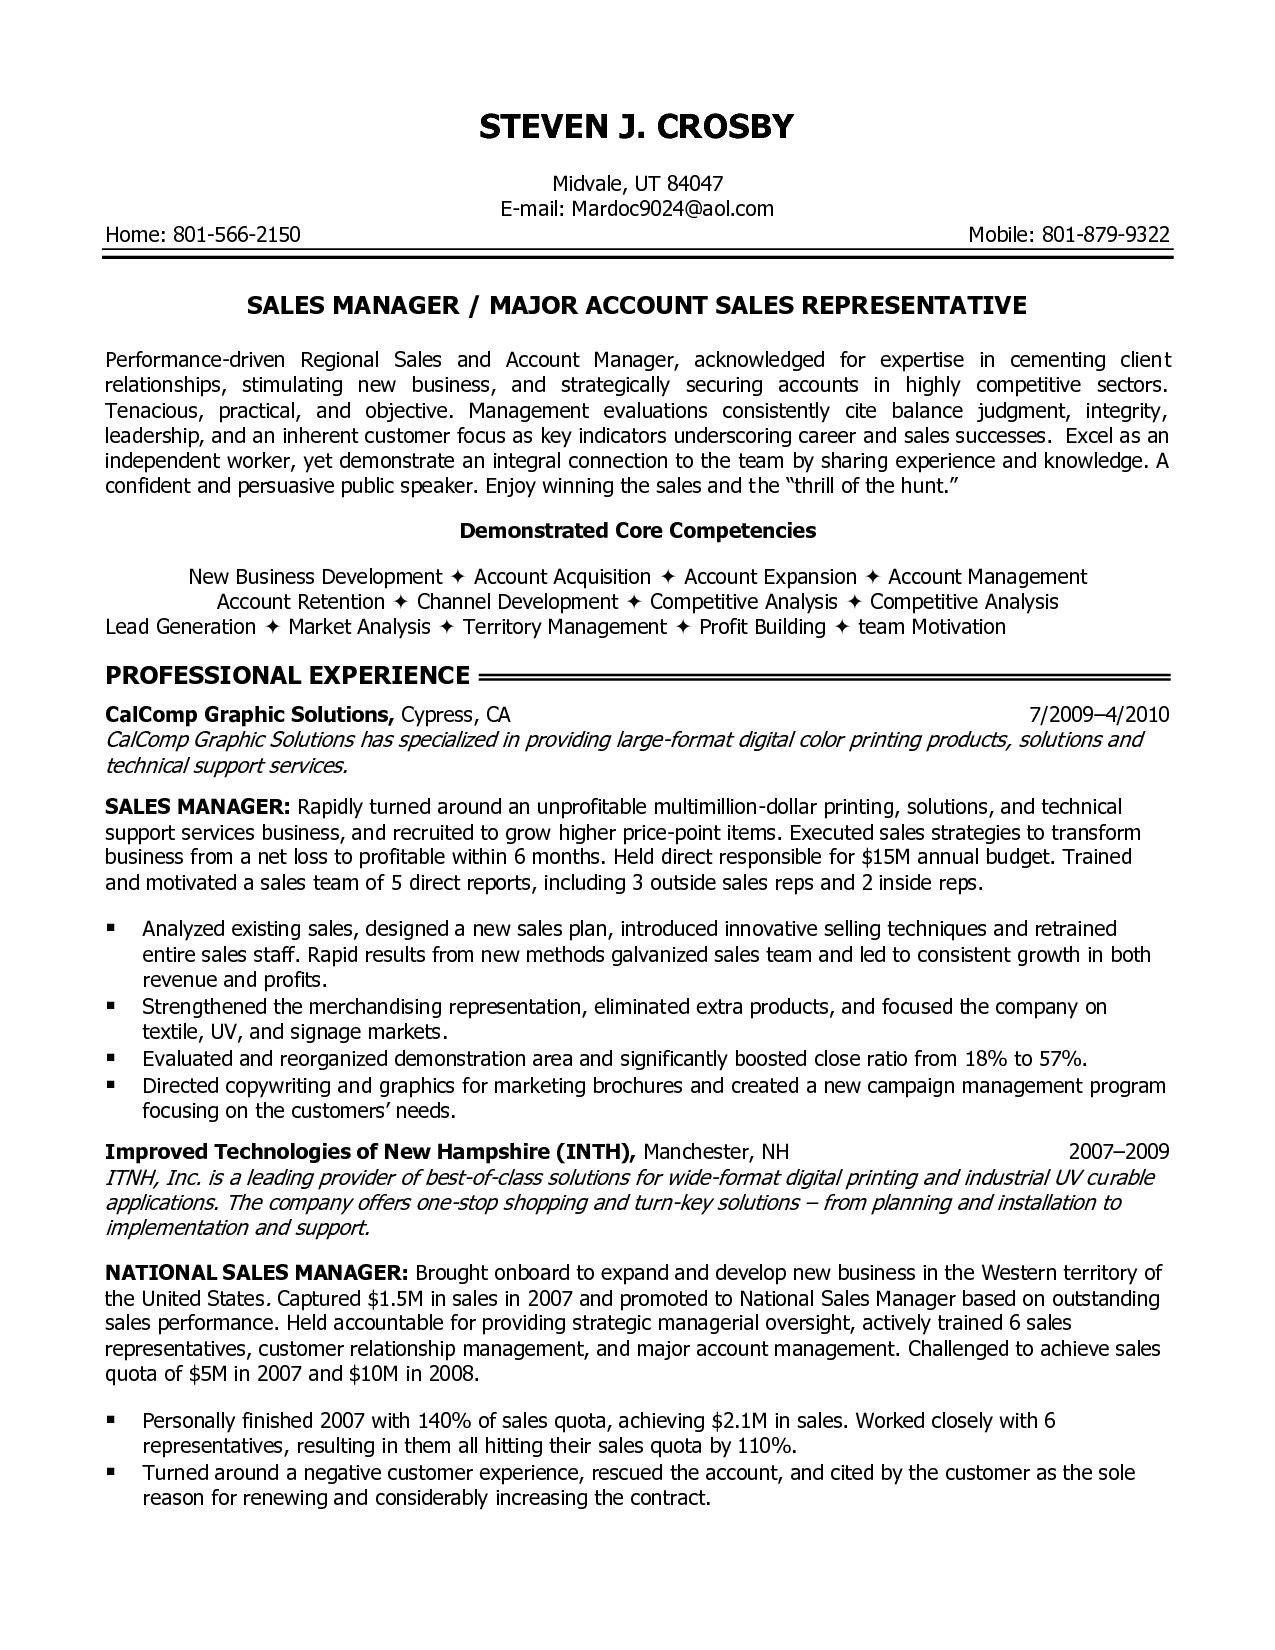 Resume Objectives For Customer Service Core Petencies Resume